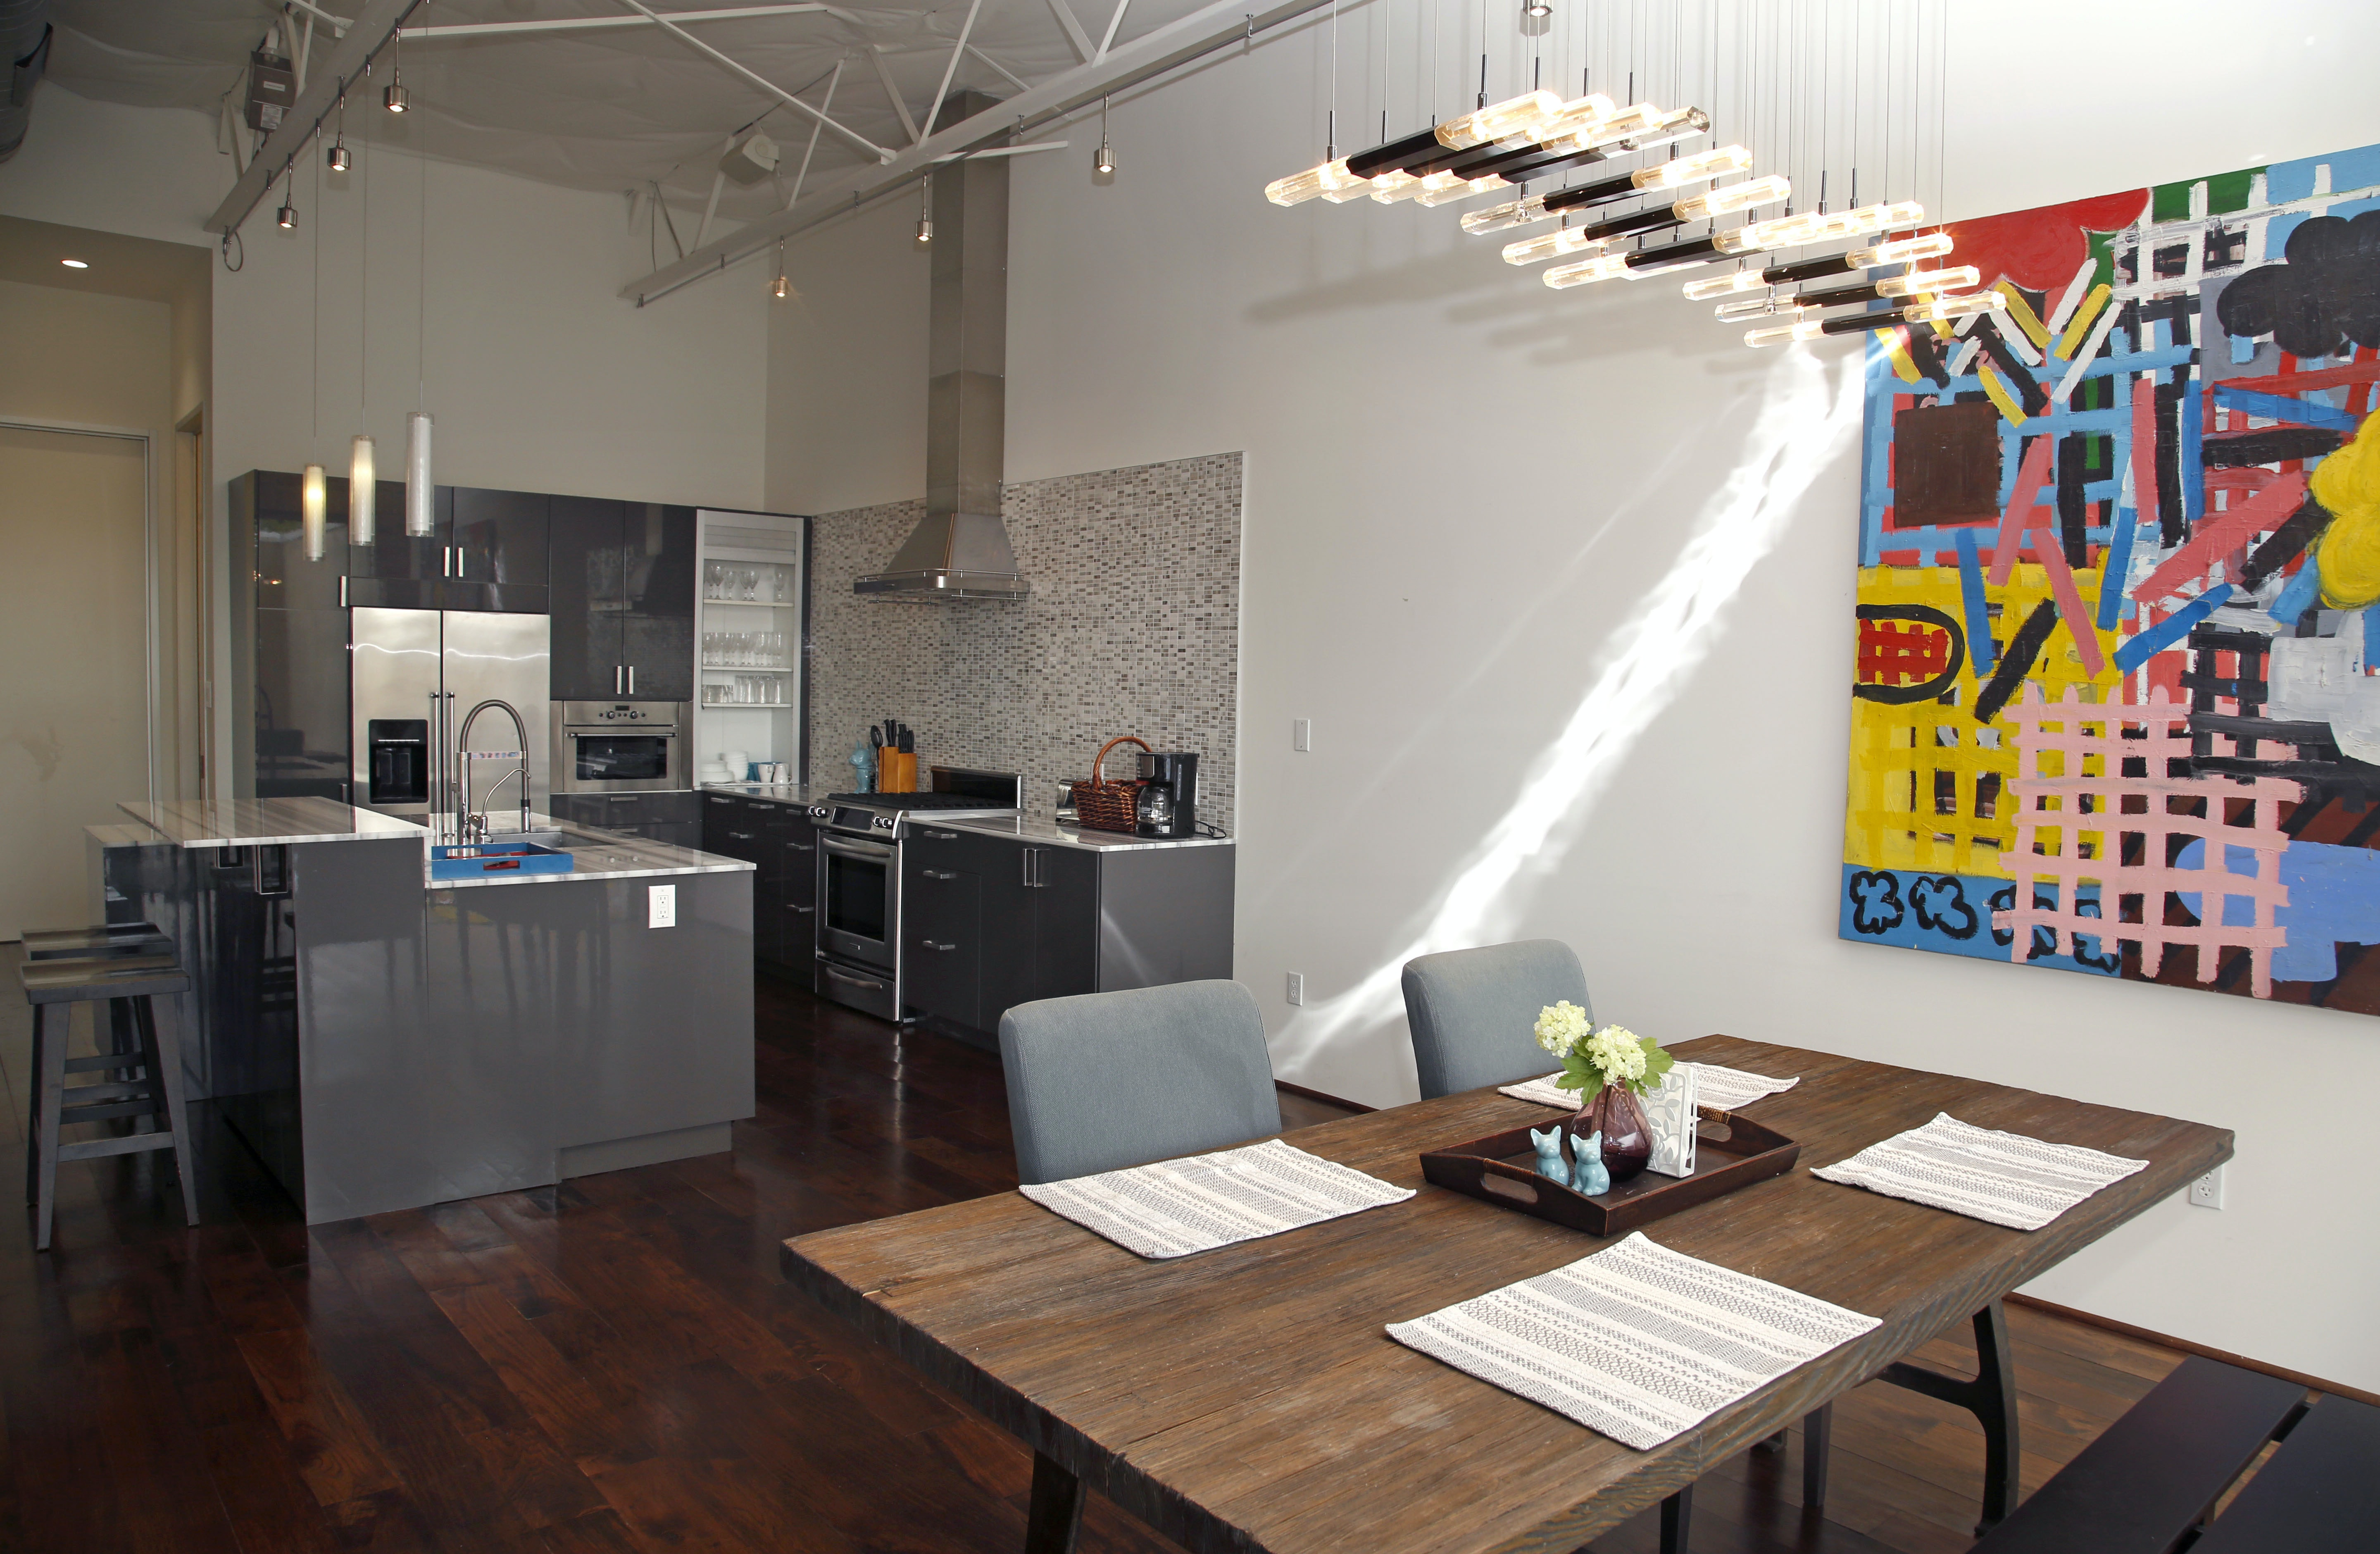 The Kitchen And Dining Area In One Of The Vantage Street Loft Homes In  Dallasu0027 Design District.